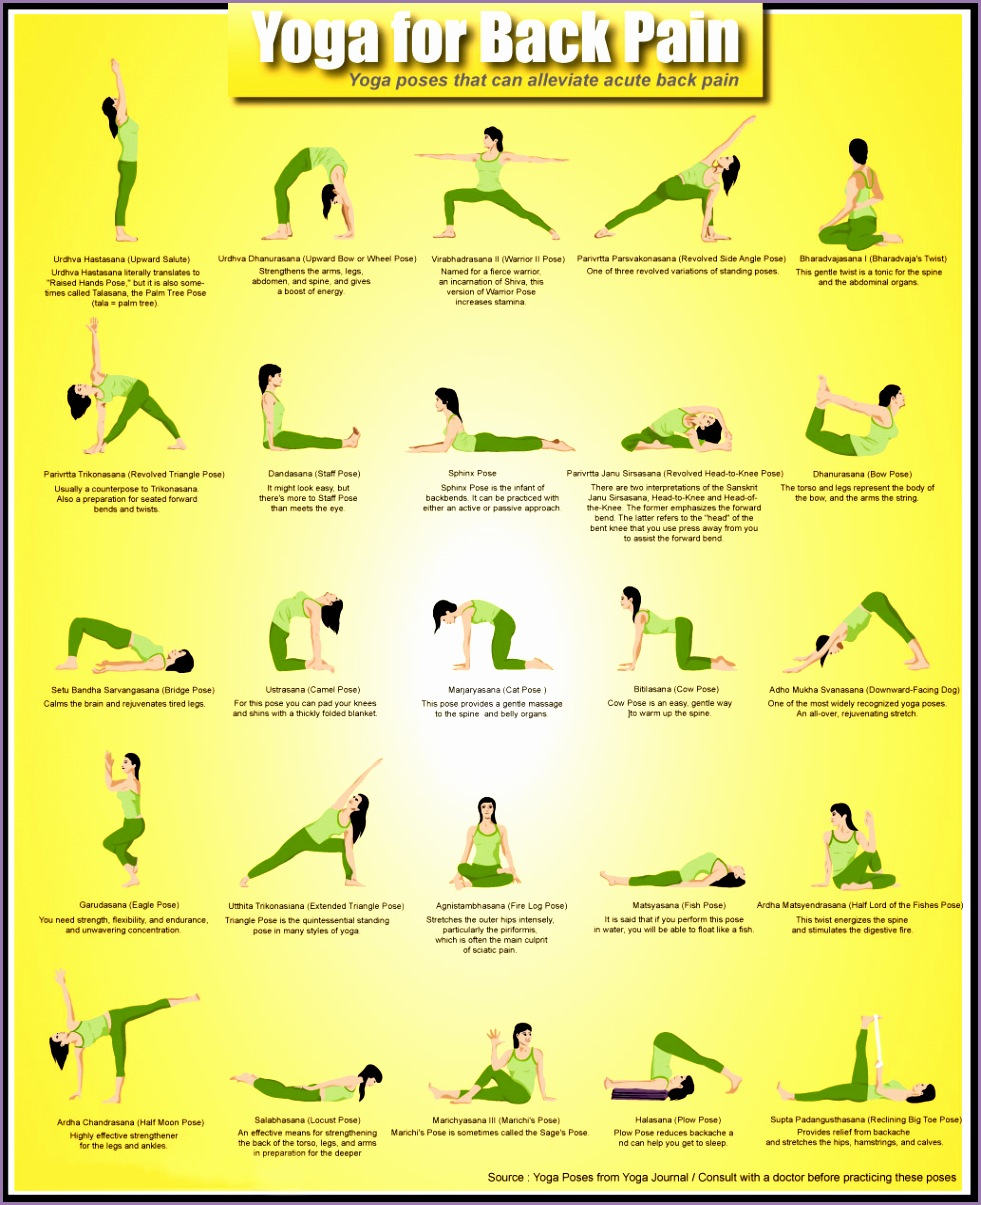 yoga poses back pain